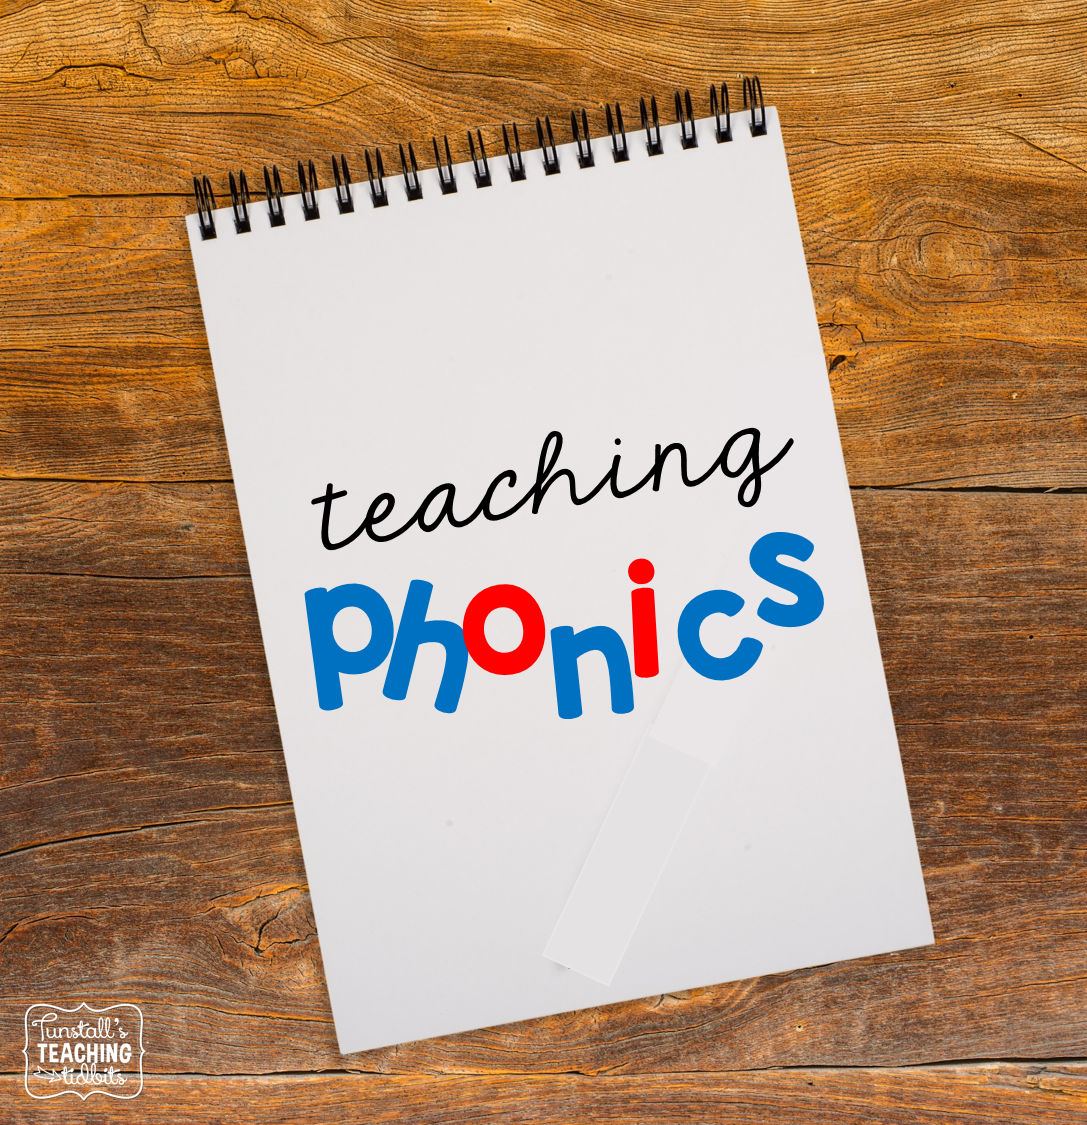 teaching phonics Help children learn to read with our free, award-winning reading and phonics game.